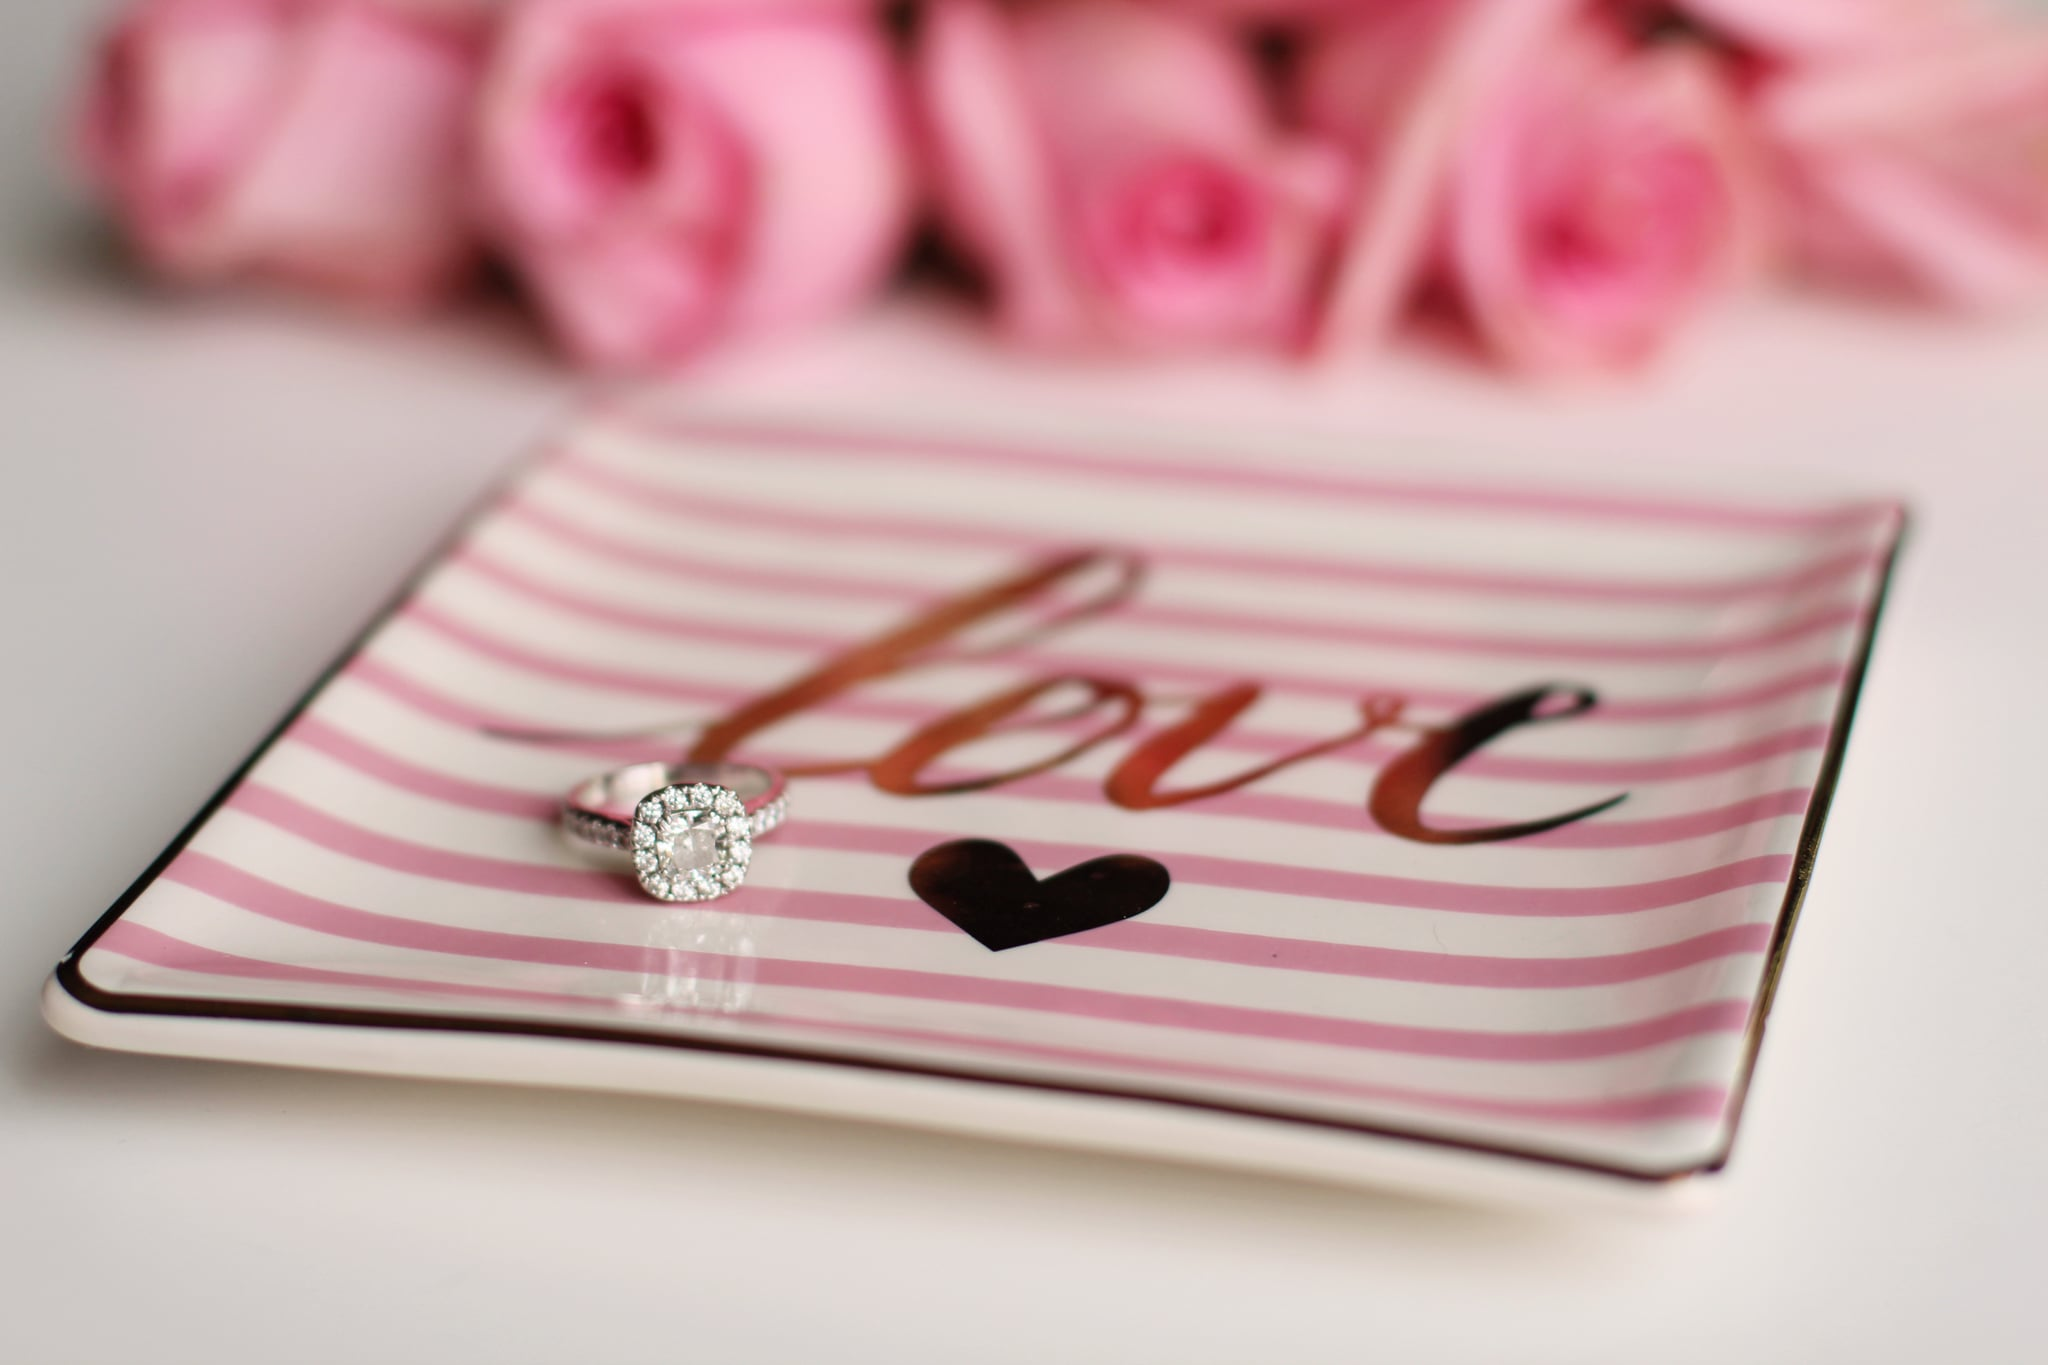 Buying Engagement Ring Insurance POPSUGAR Career and Finance